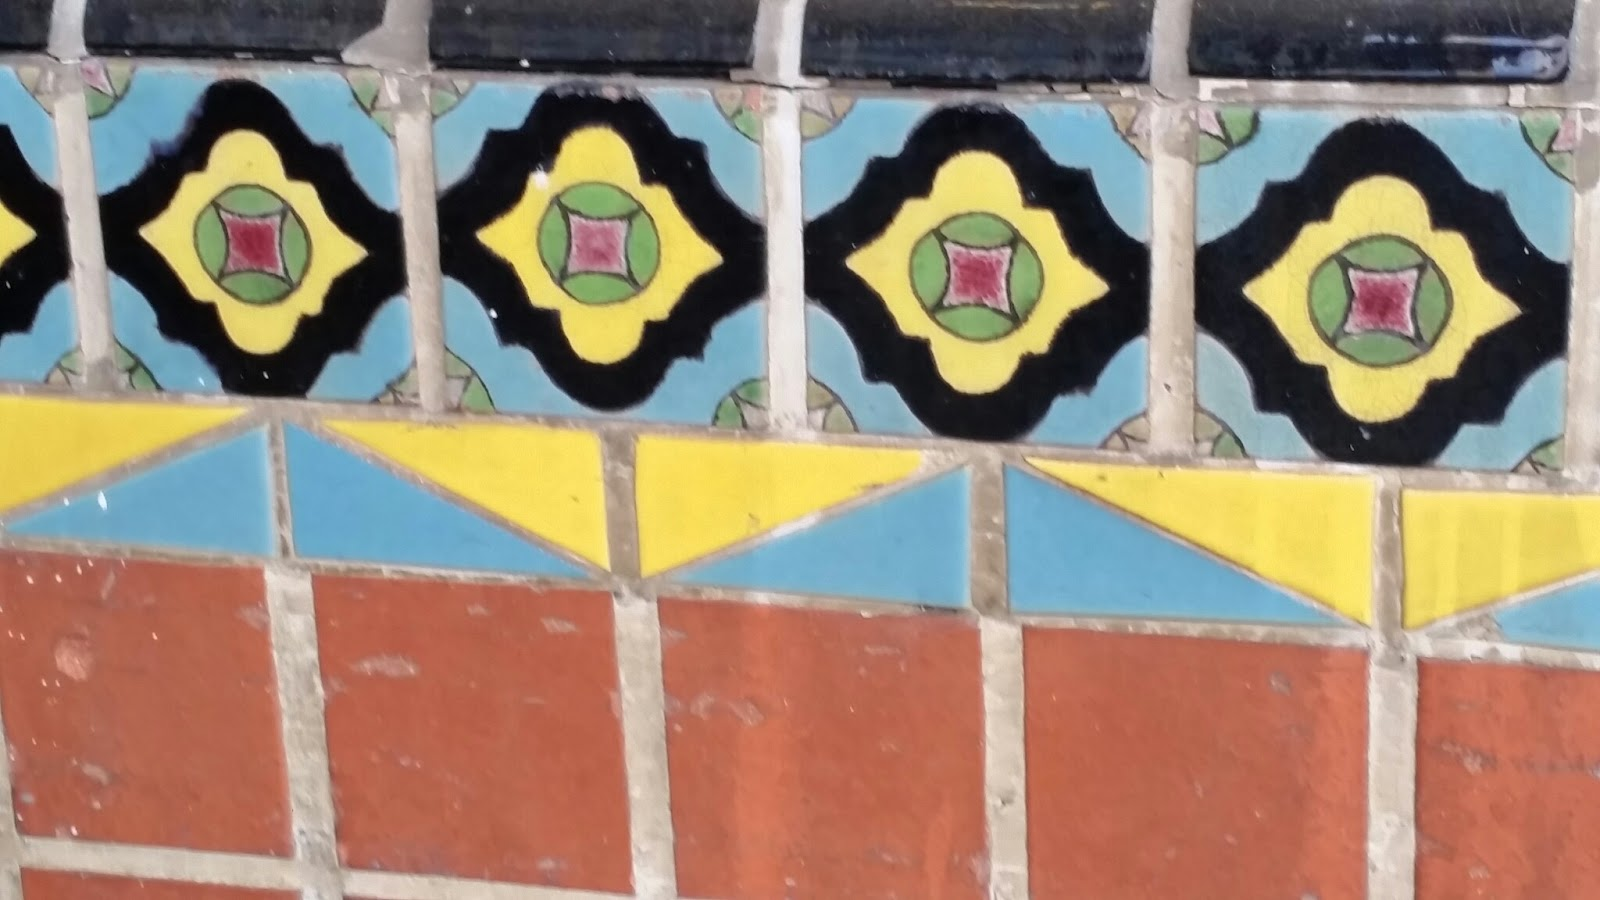 Bright colors on the tiles date the tiles to the early 1900s